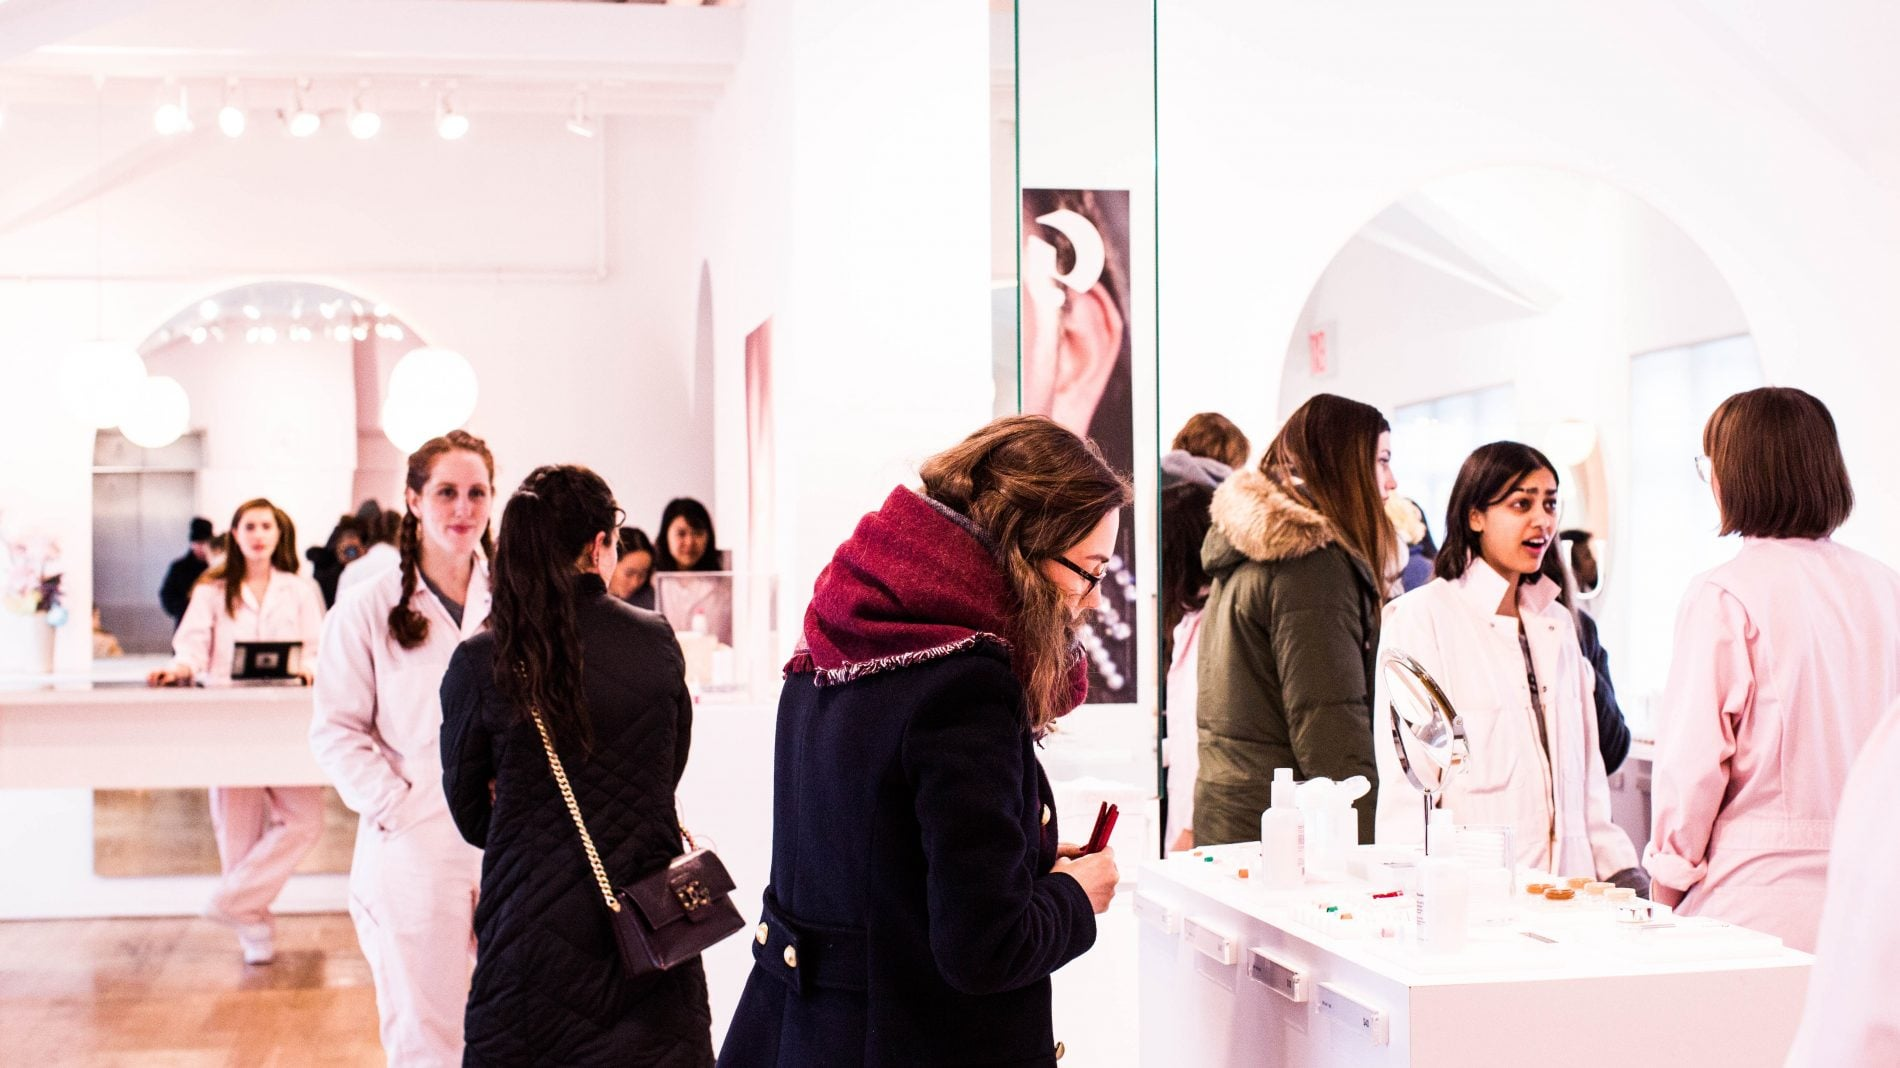 Customers browsing in the digital first Glossier showroom